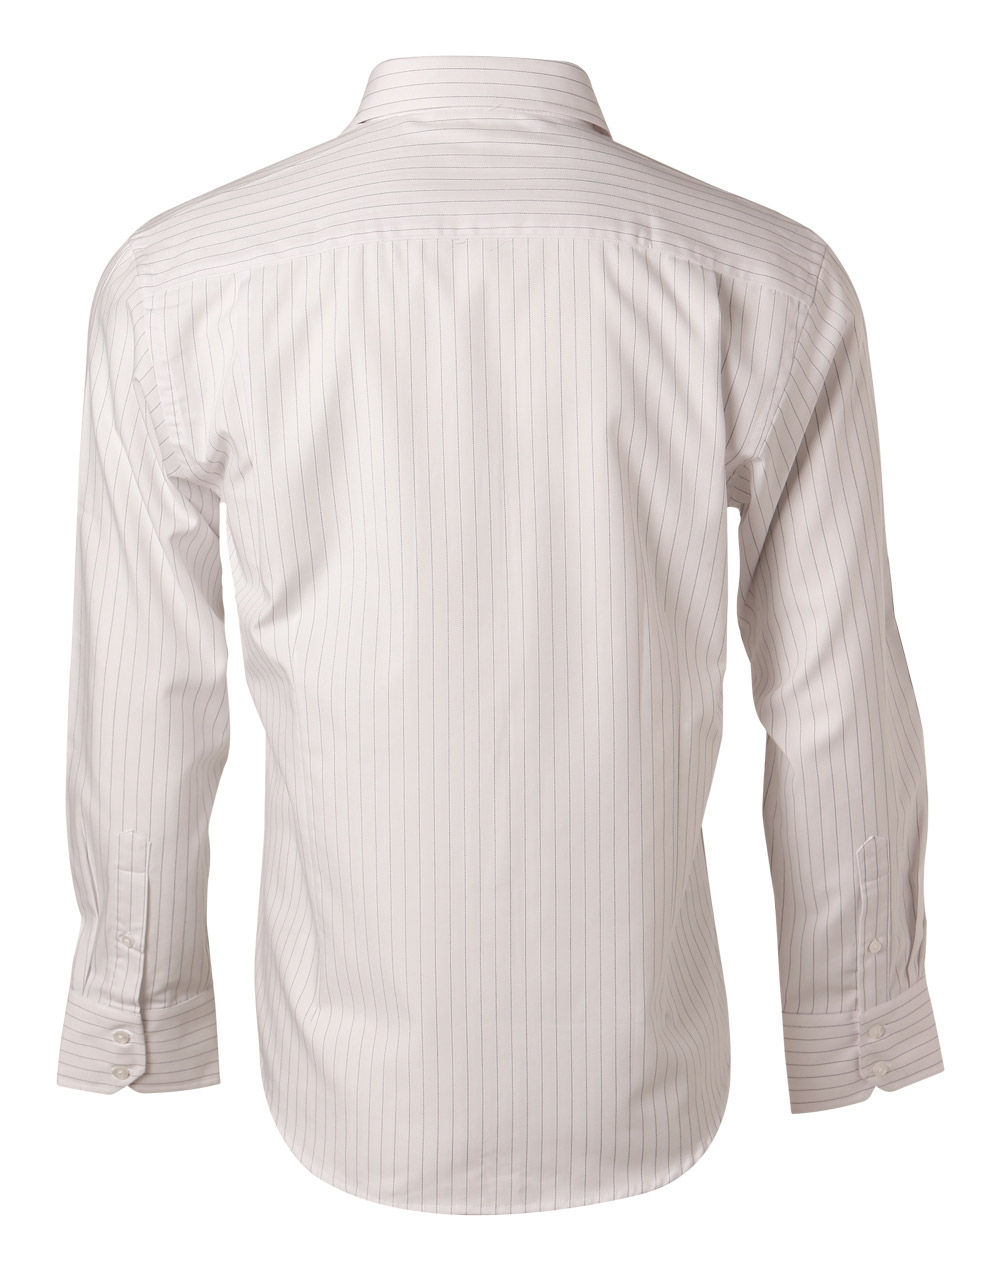 https://s3-ap-southeast-1.amazonaws.com/ws-imgs/BUSINESSSHIRTS/BS17_White.Charcoal_Back.jpg